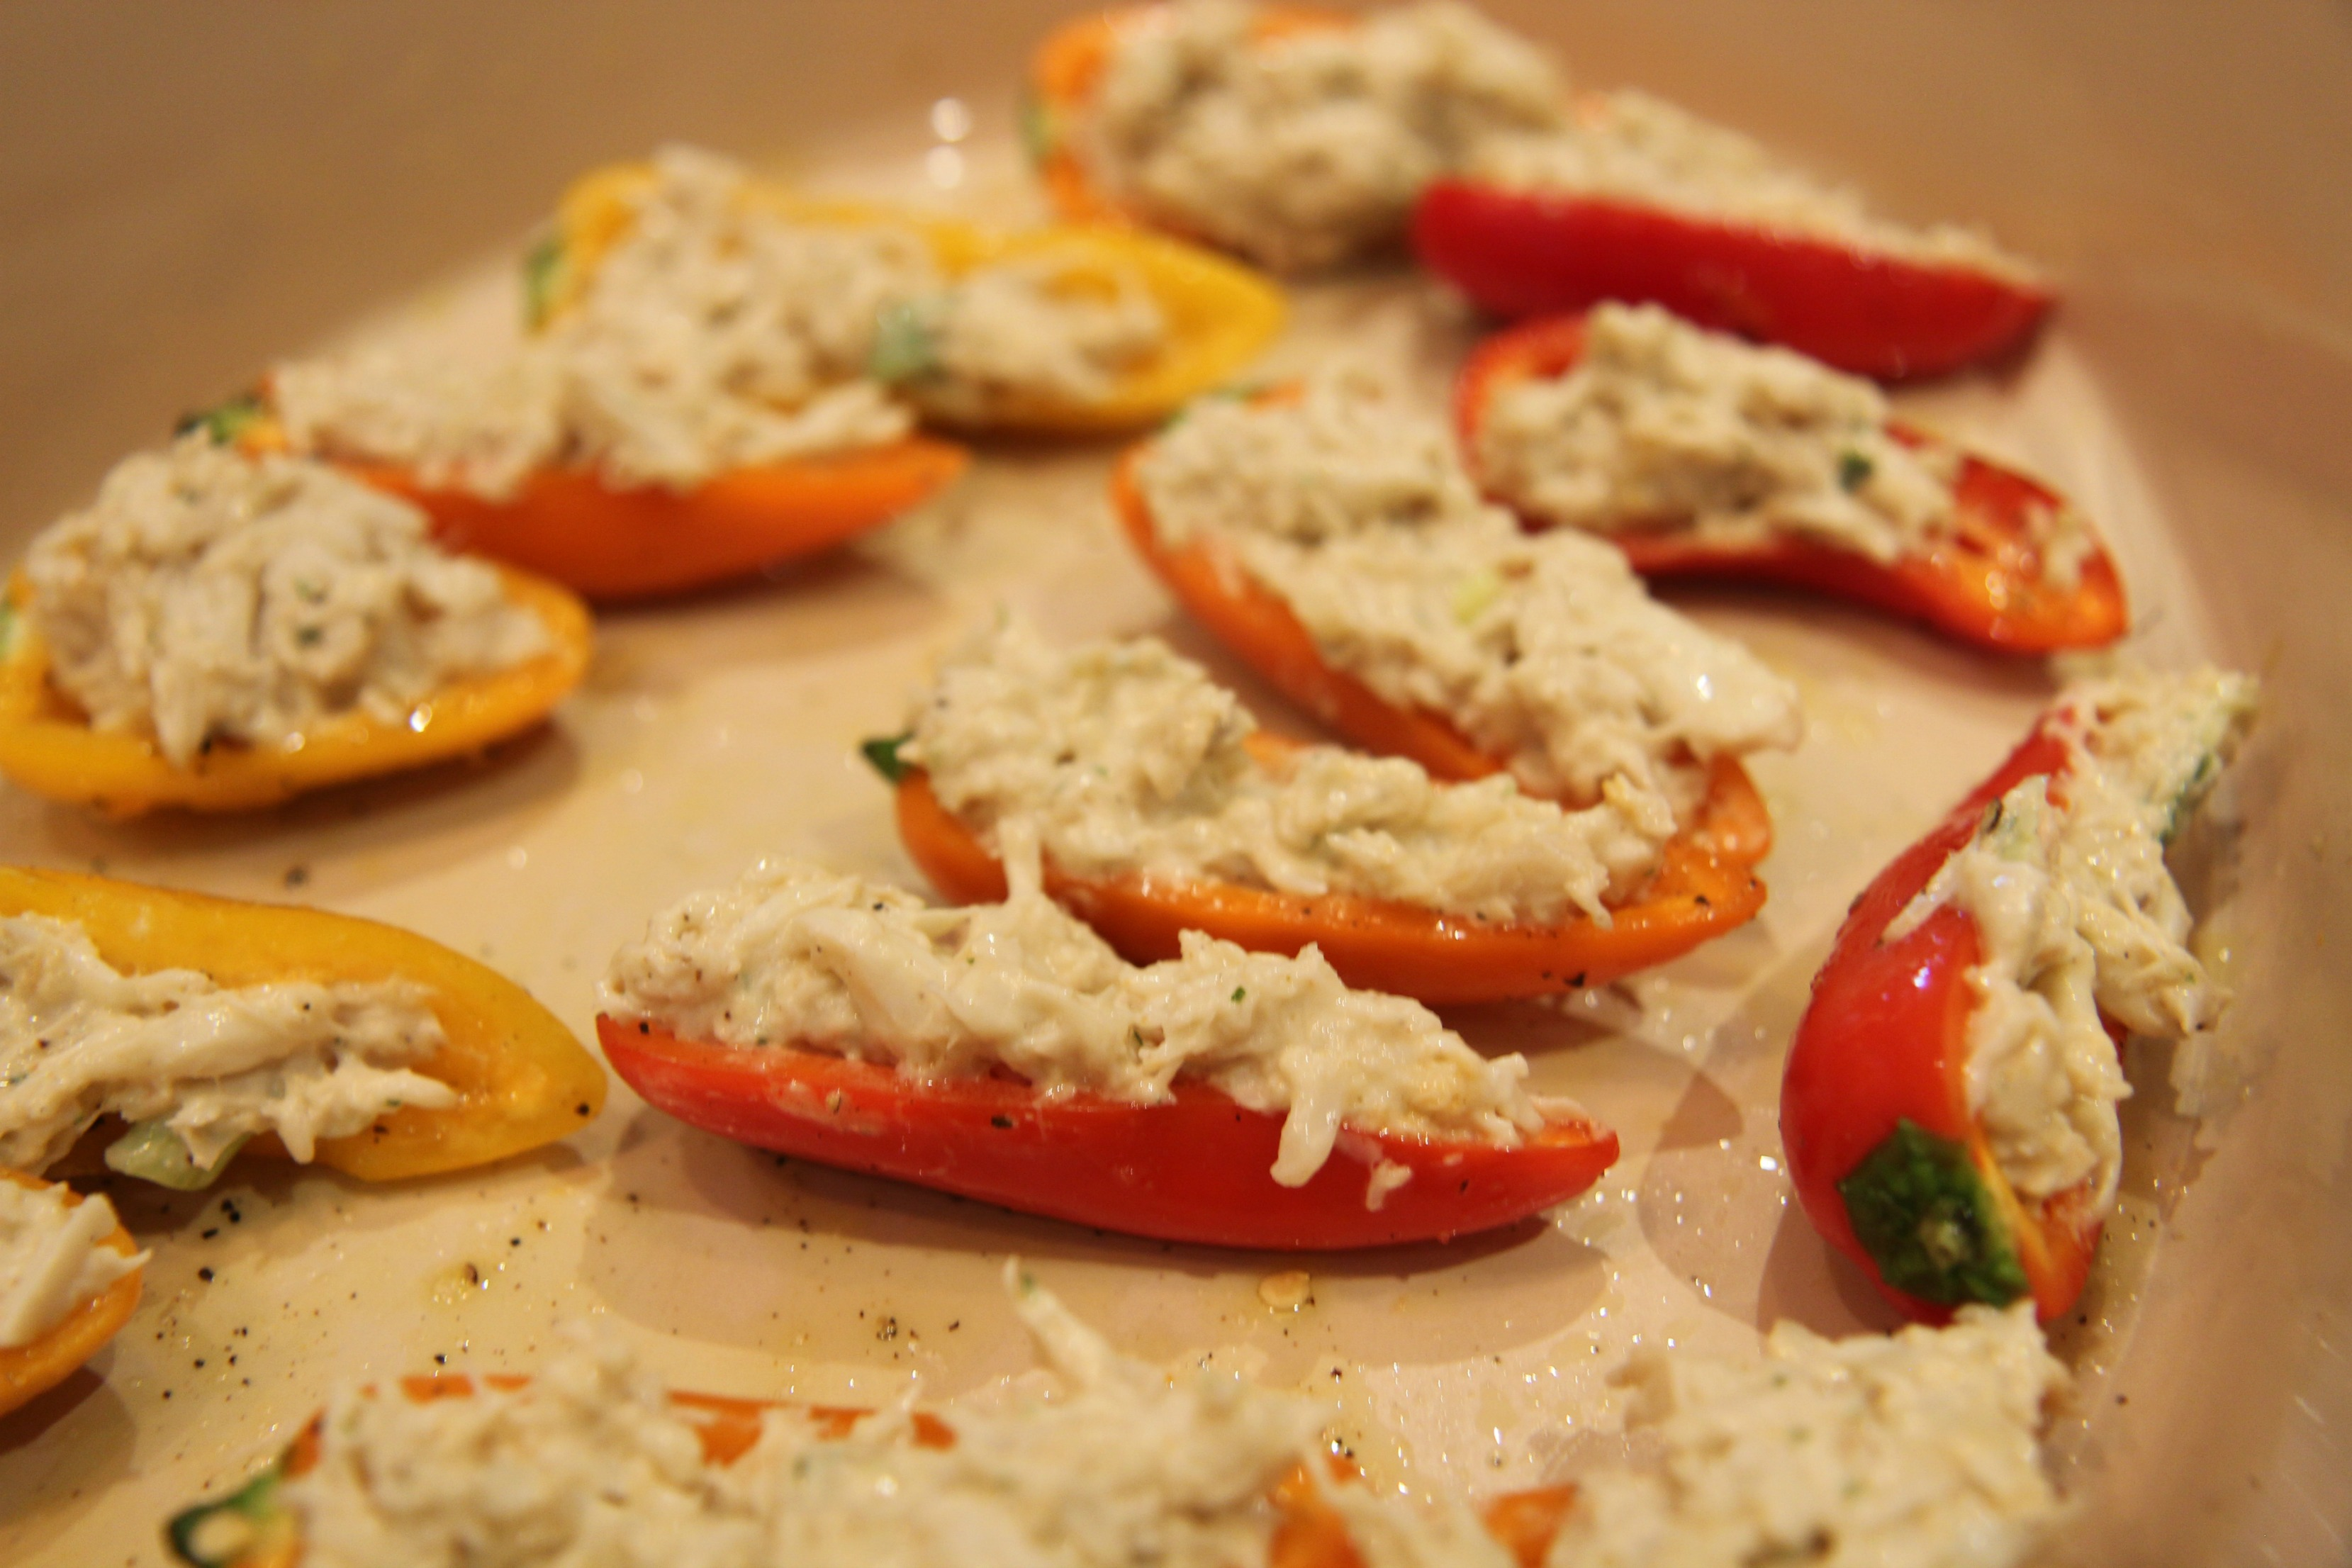 Drizzle the peppers with a little oil after filling them.